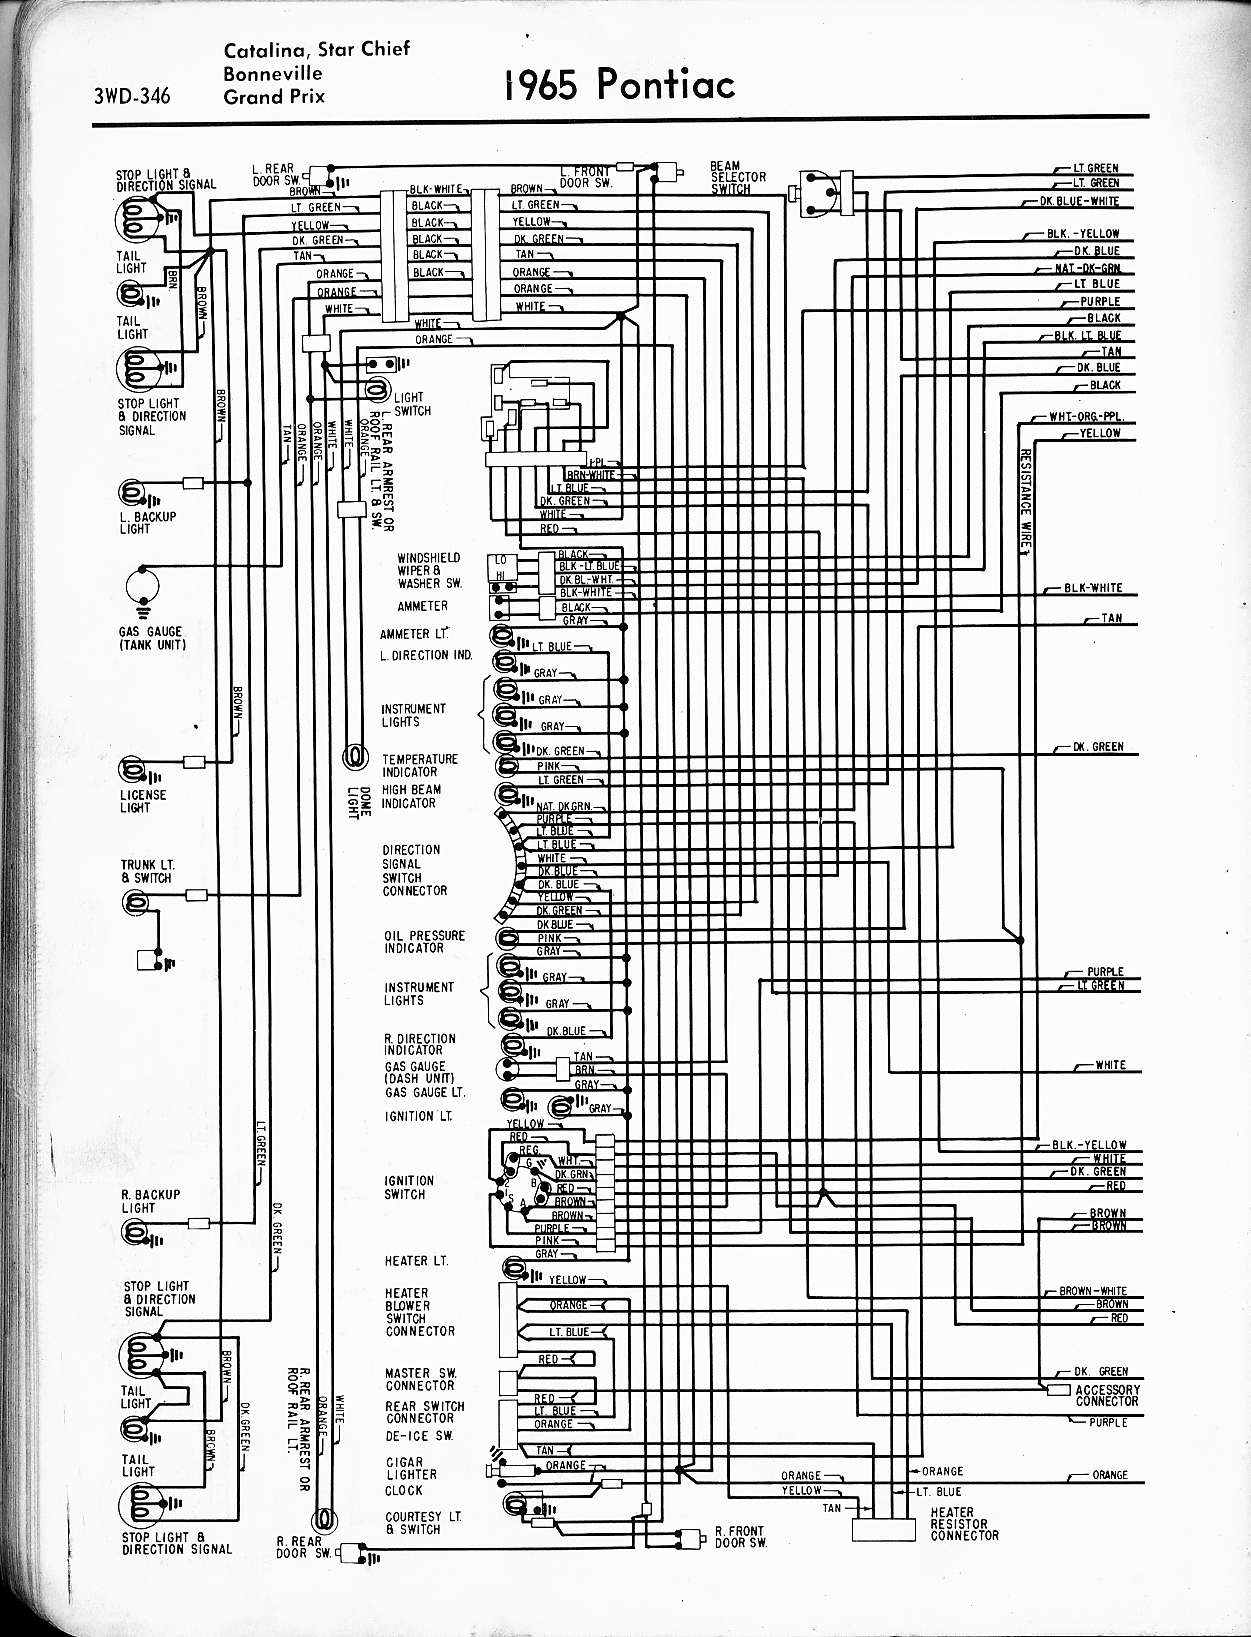 1960 Pontiac Wiring Diagram Schematic List Of Circuit 1977 Evinrude Free Picture Wallace Racing Diagrams Rh Wallaceracing Com